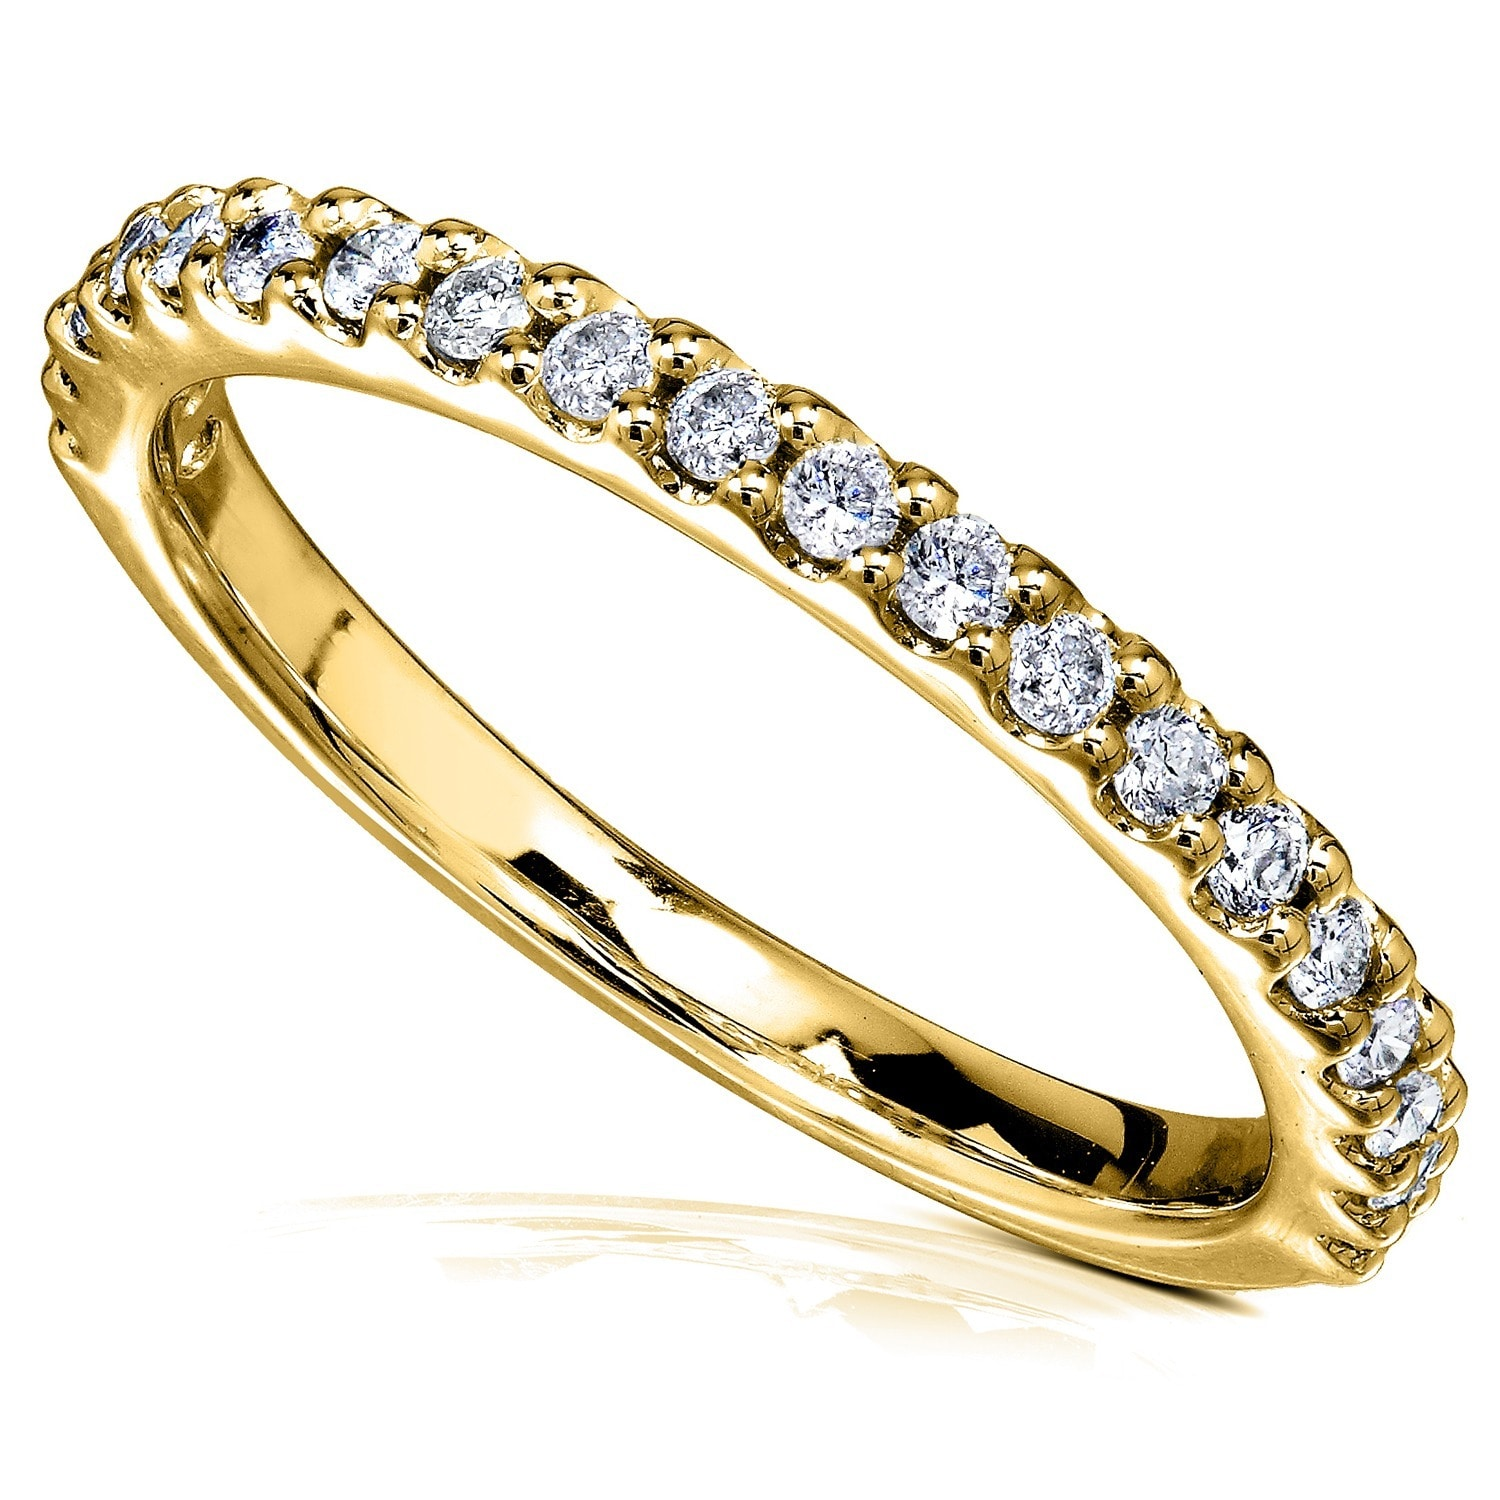 diamond p yellow bands eternity ring large band context the beaverbrooks gold half